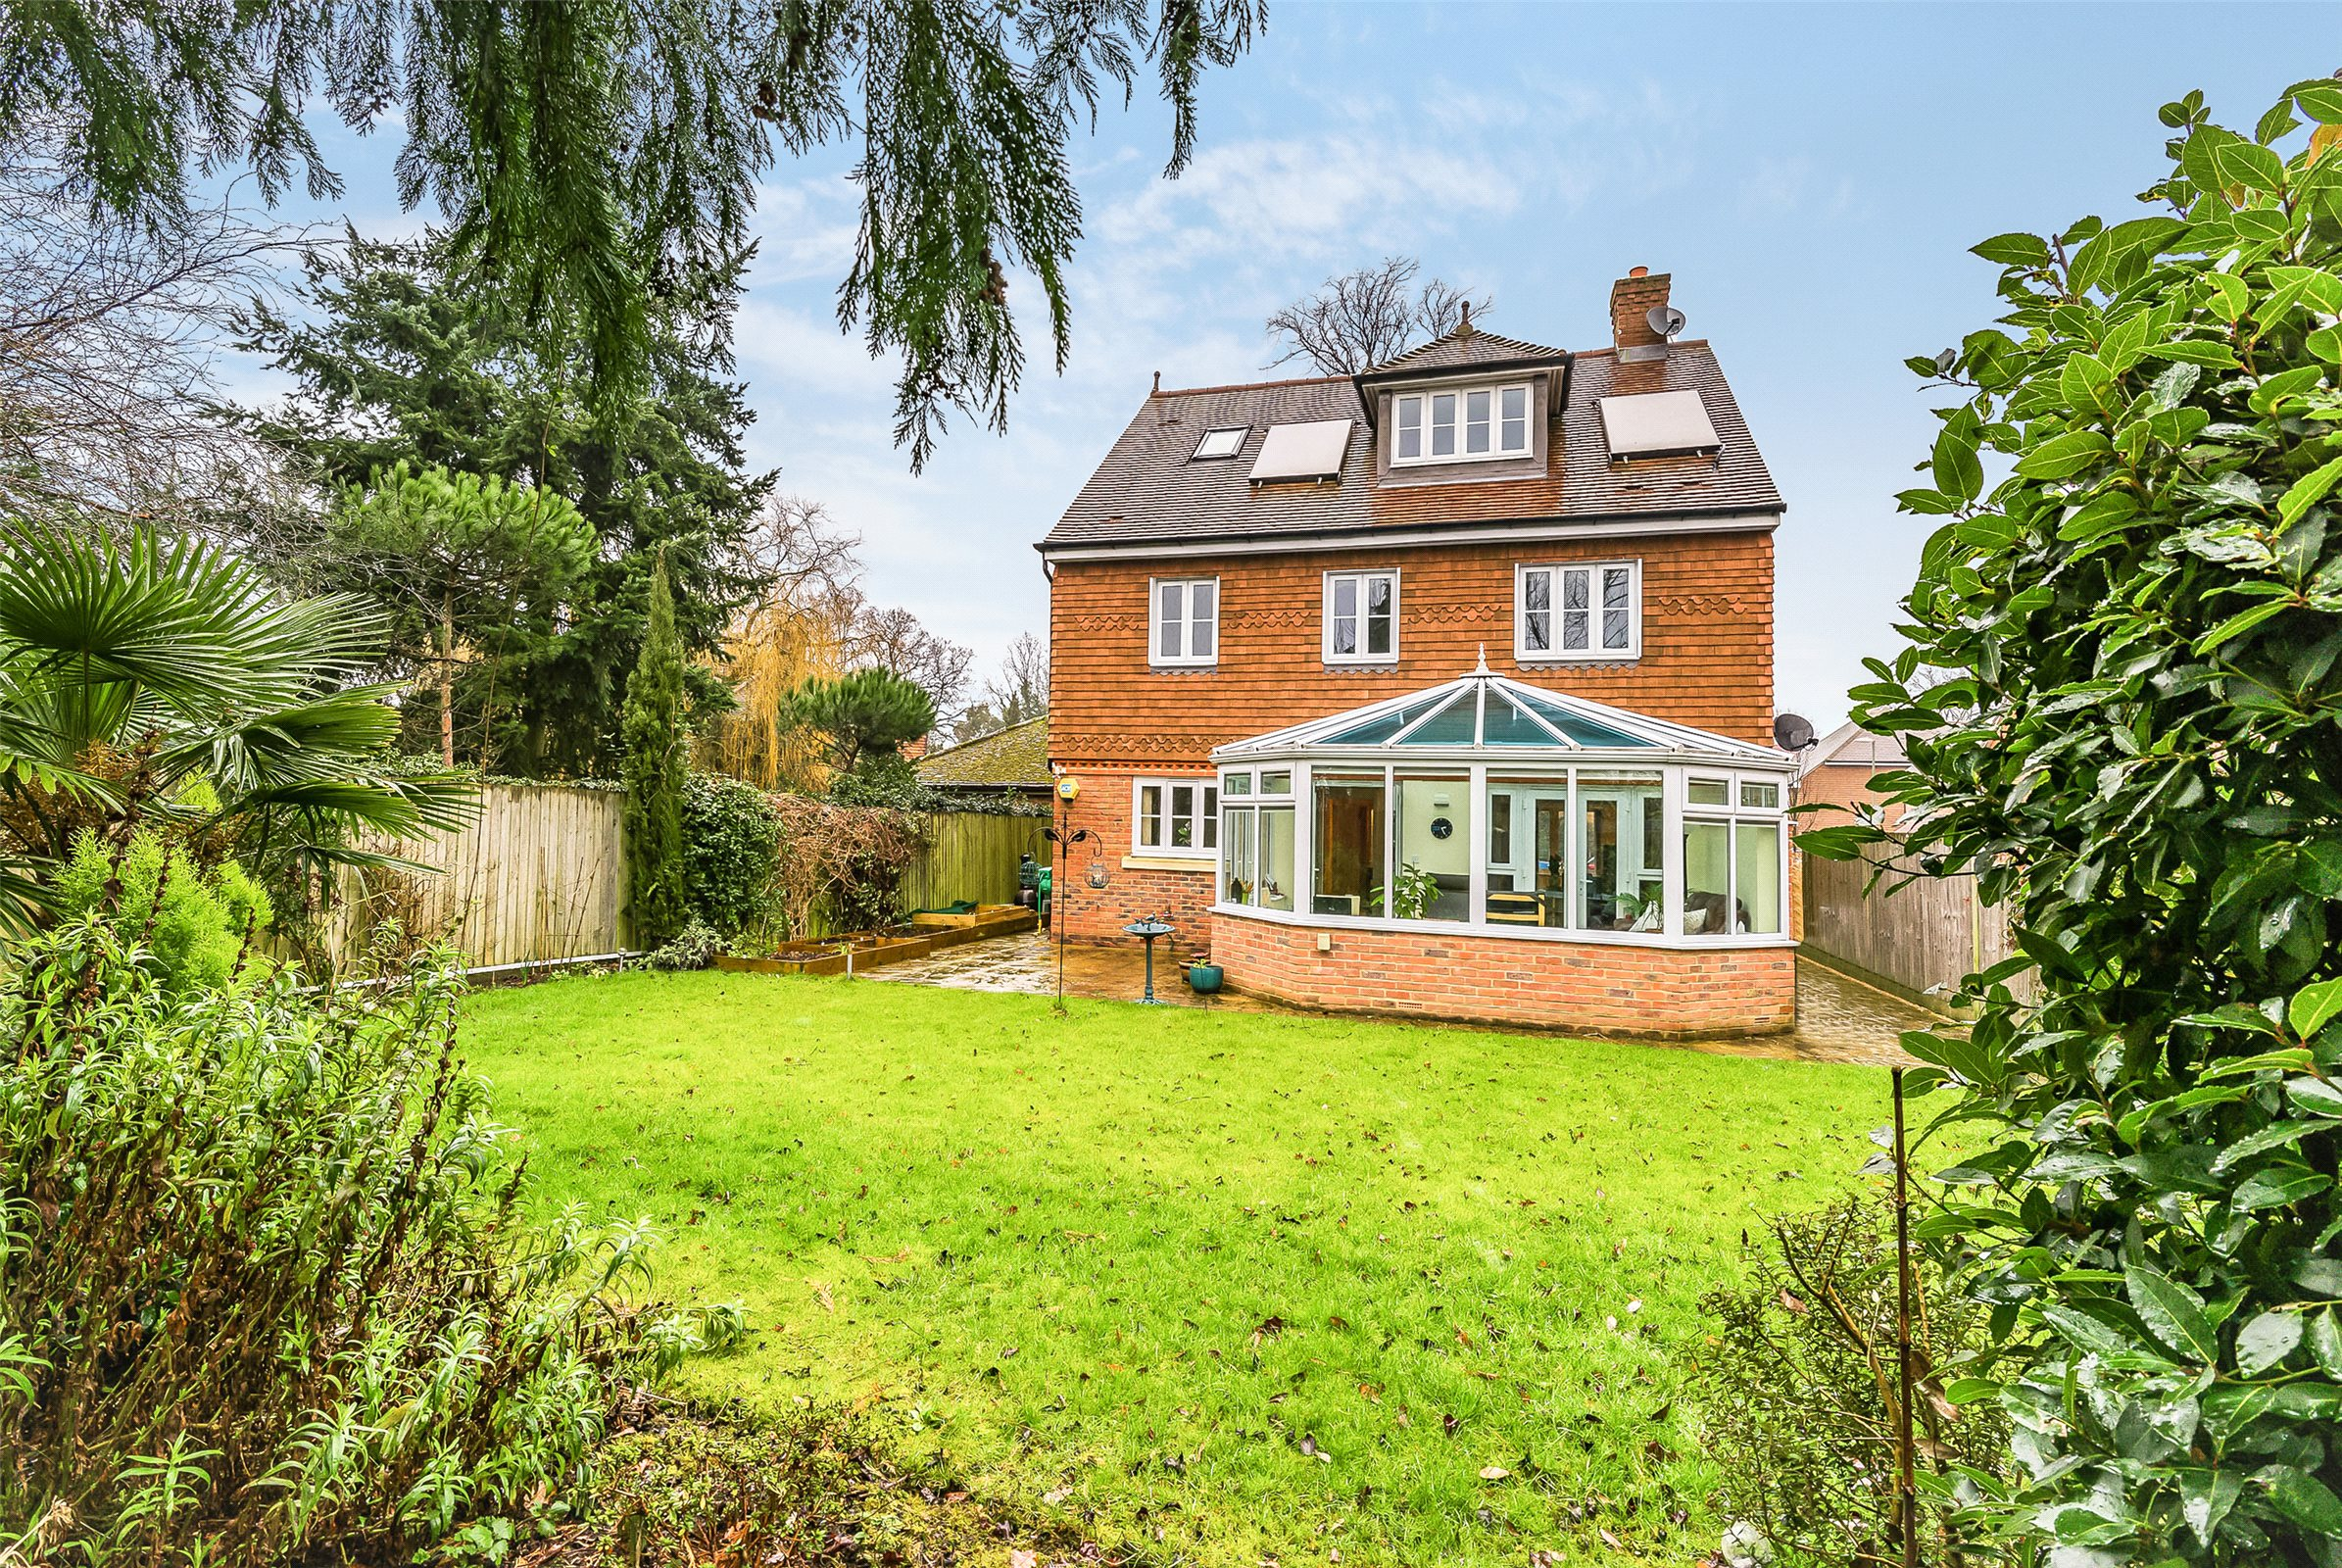 5 Bedrooms Detached House for sale in Millfield Close, Horley, Surrey, RH6